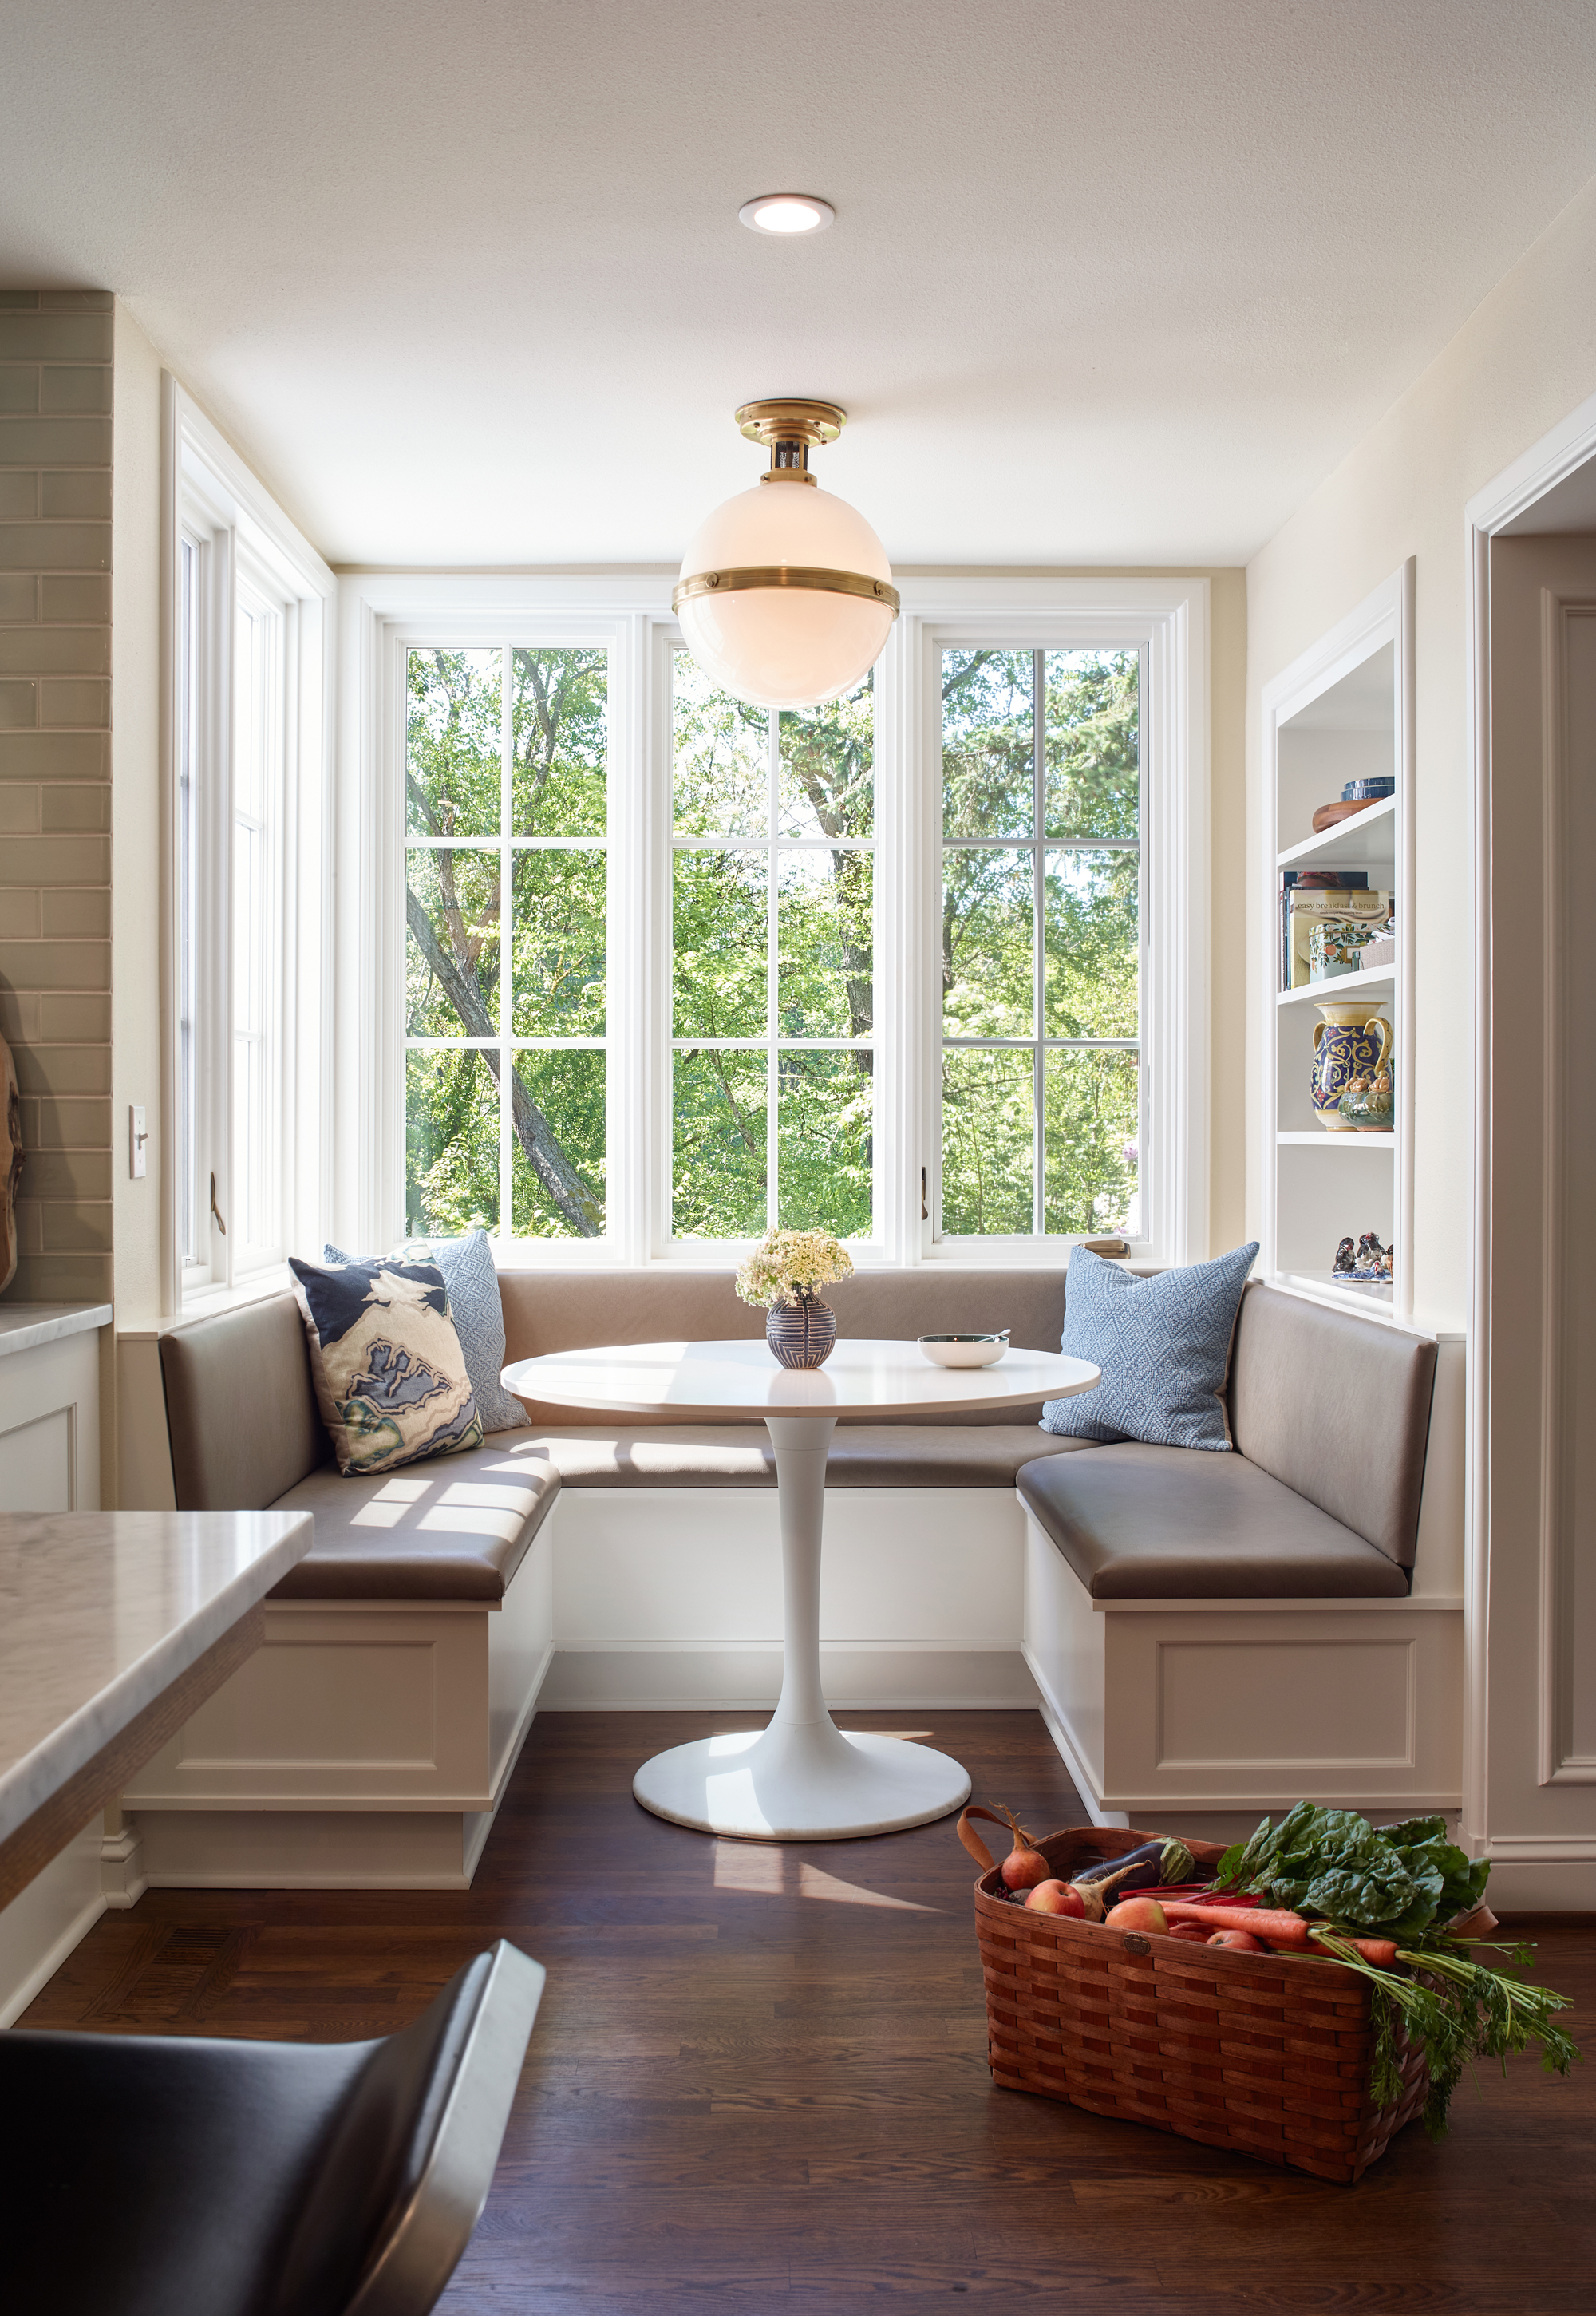 Corner seating area interior design by Jenni Leasia Interior Design in Portland